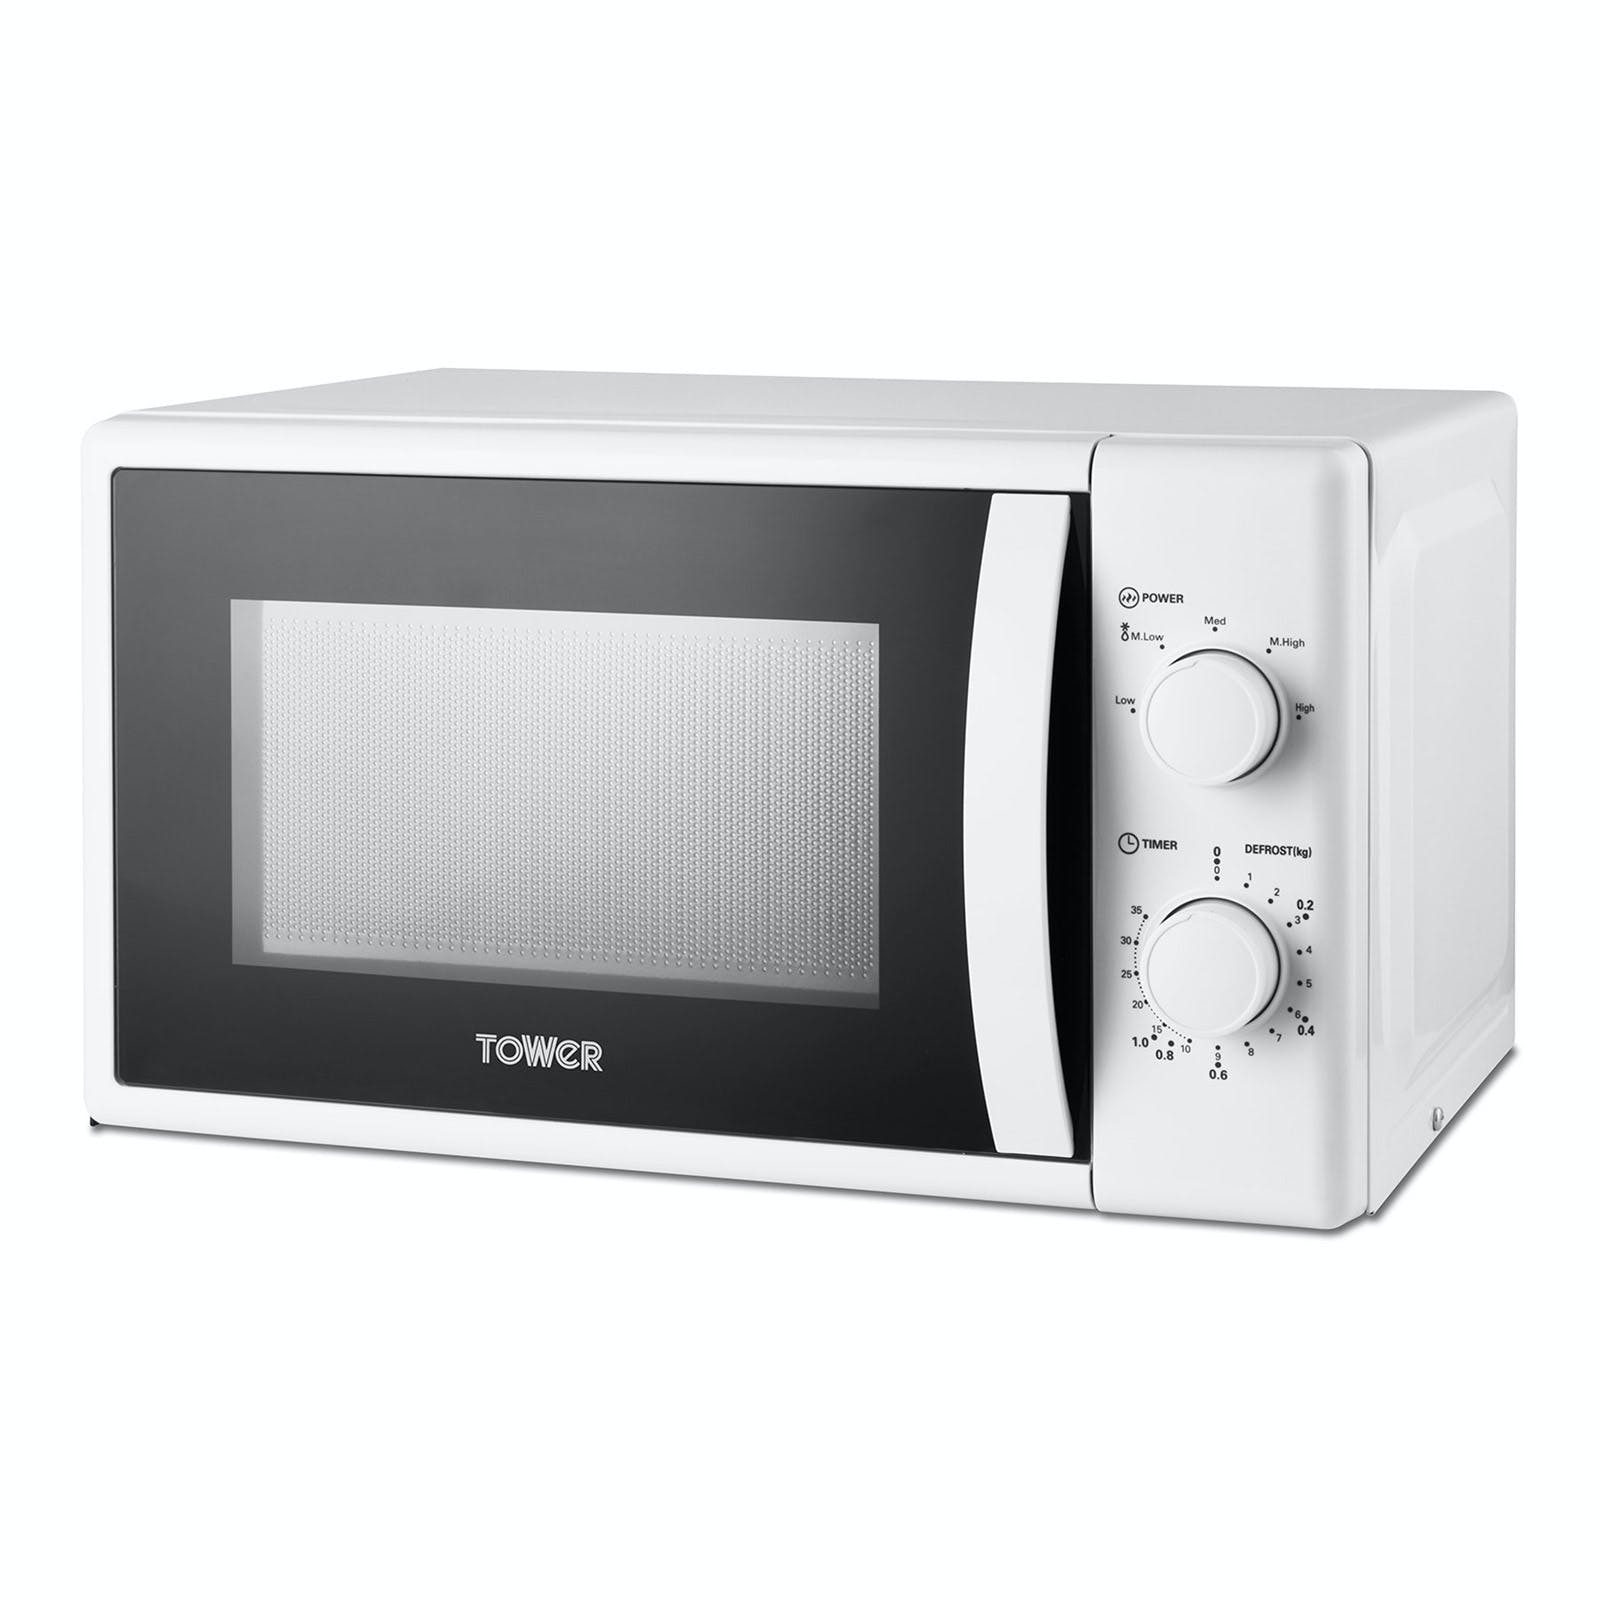 tower t24034wht microwave oven in white 20 litre 700w